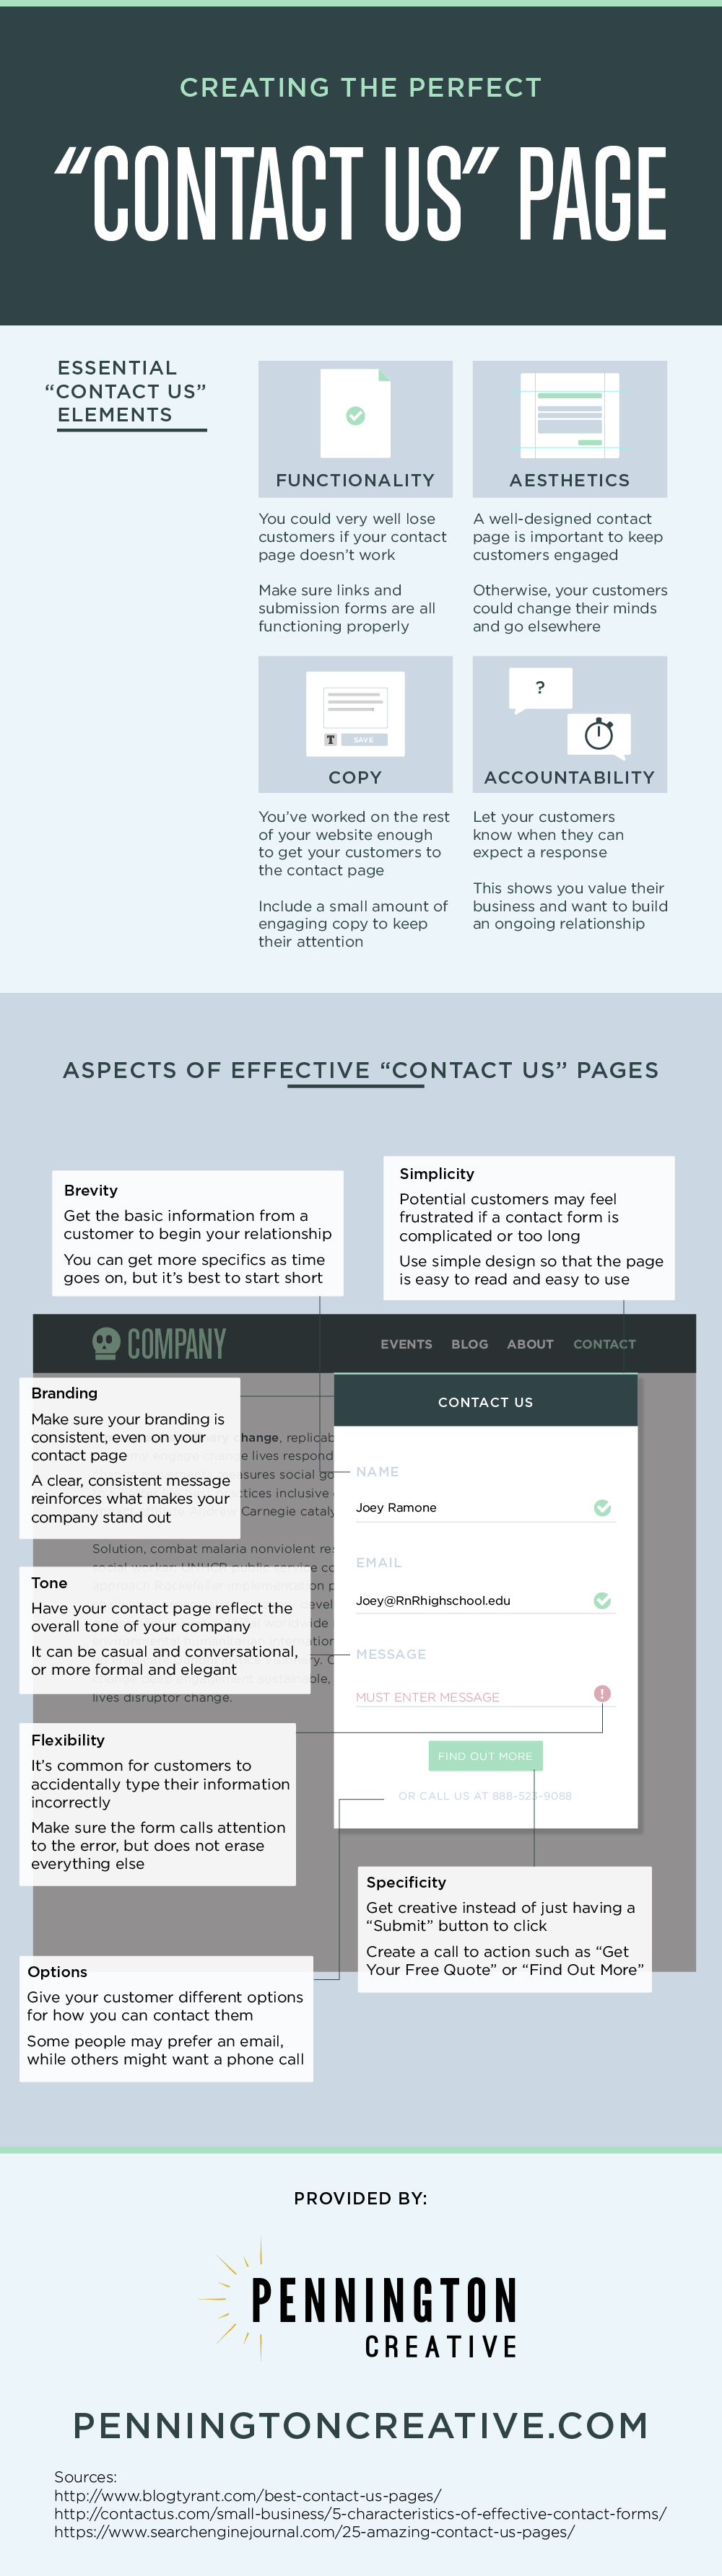 Creating the Perfect Contact Us Page Infographic